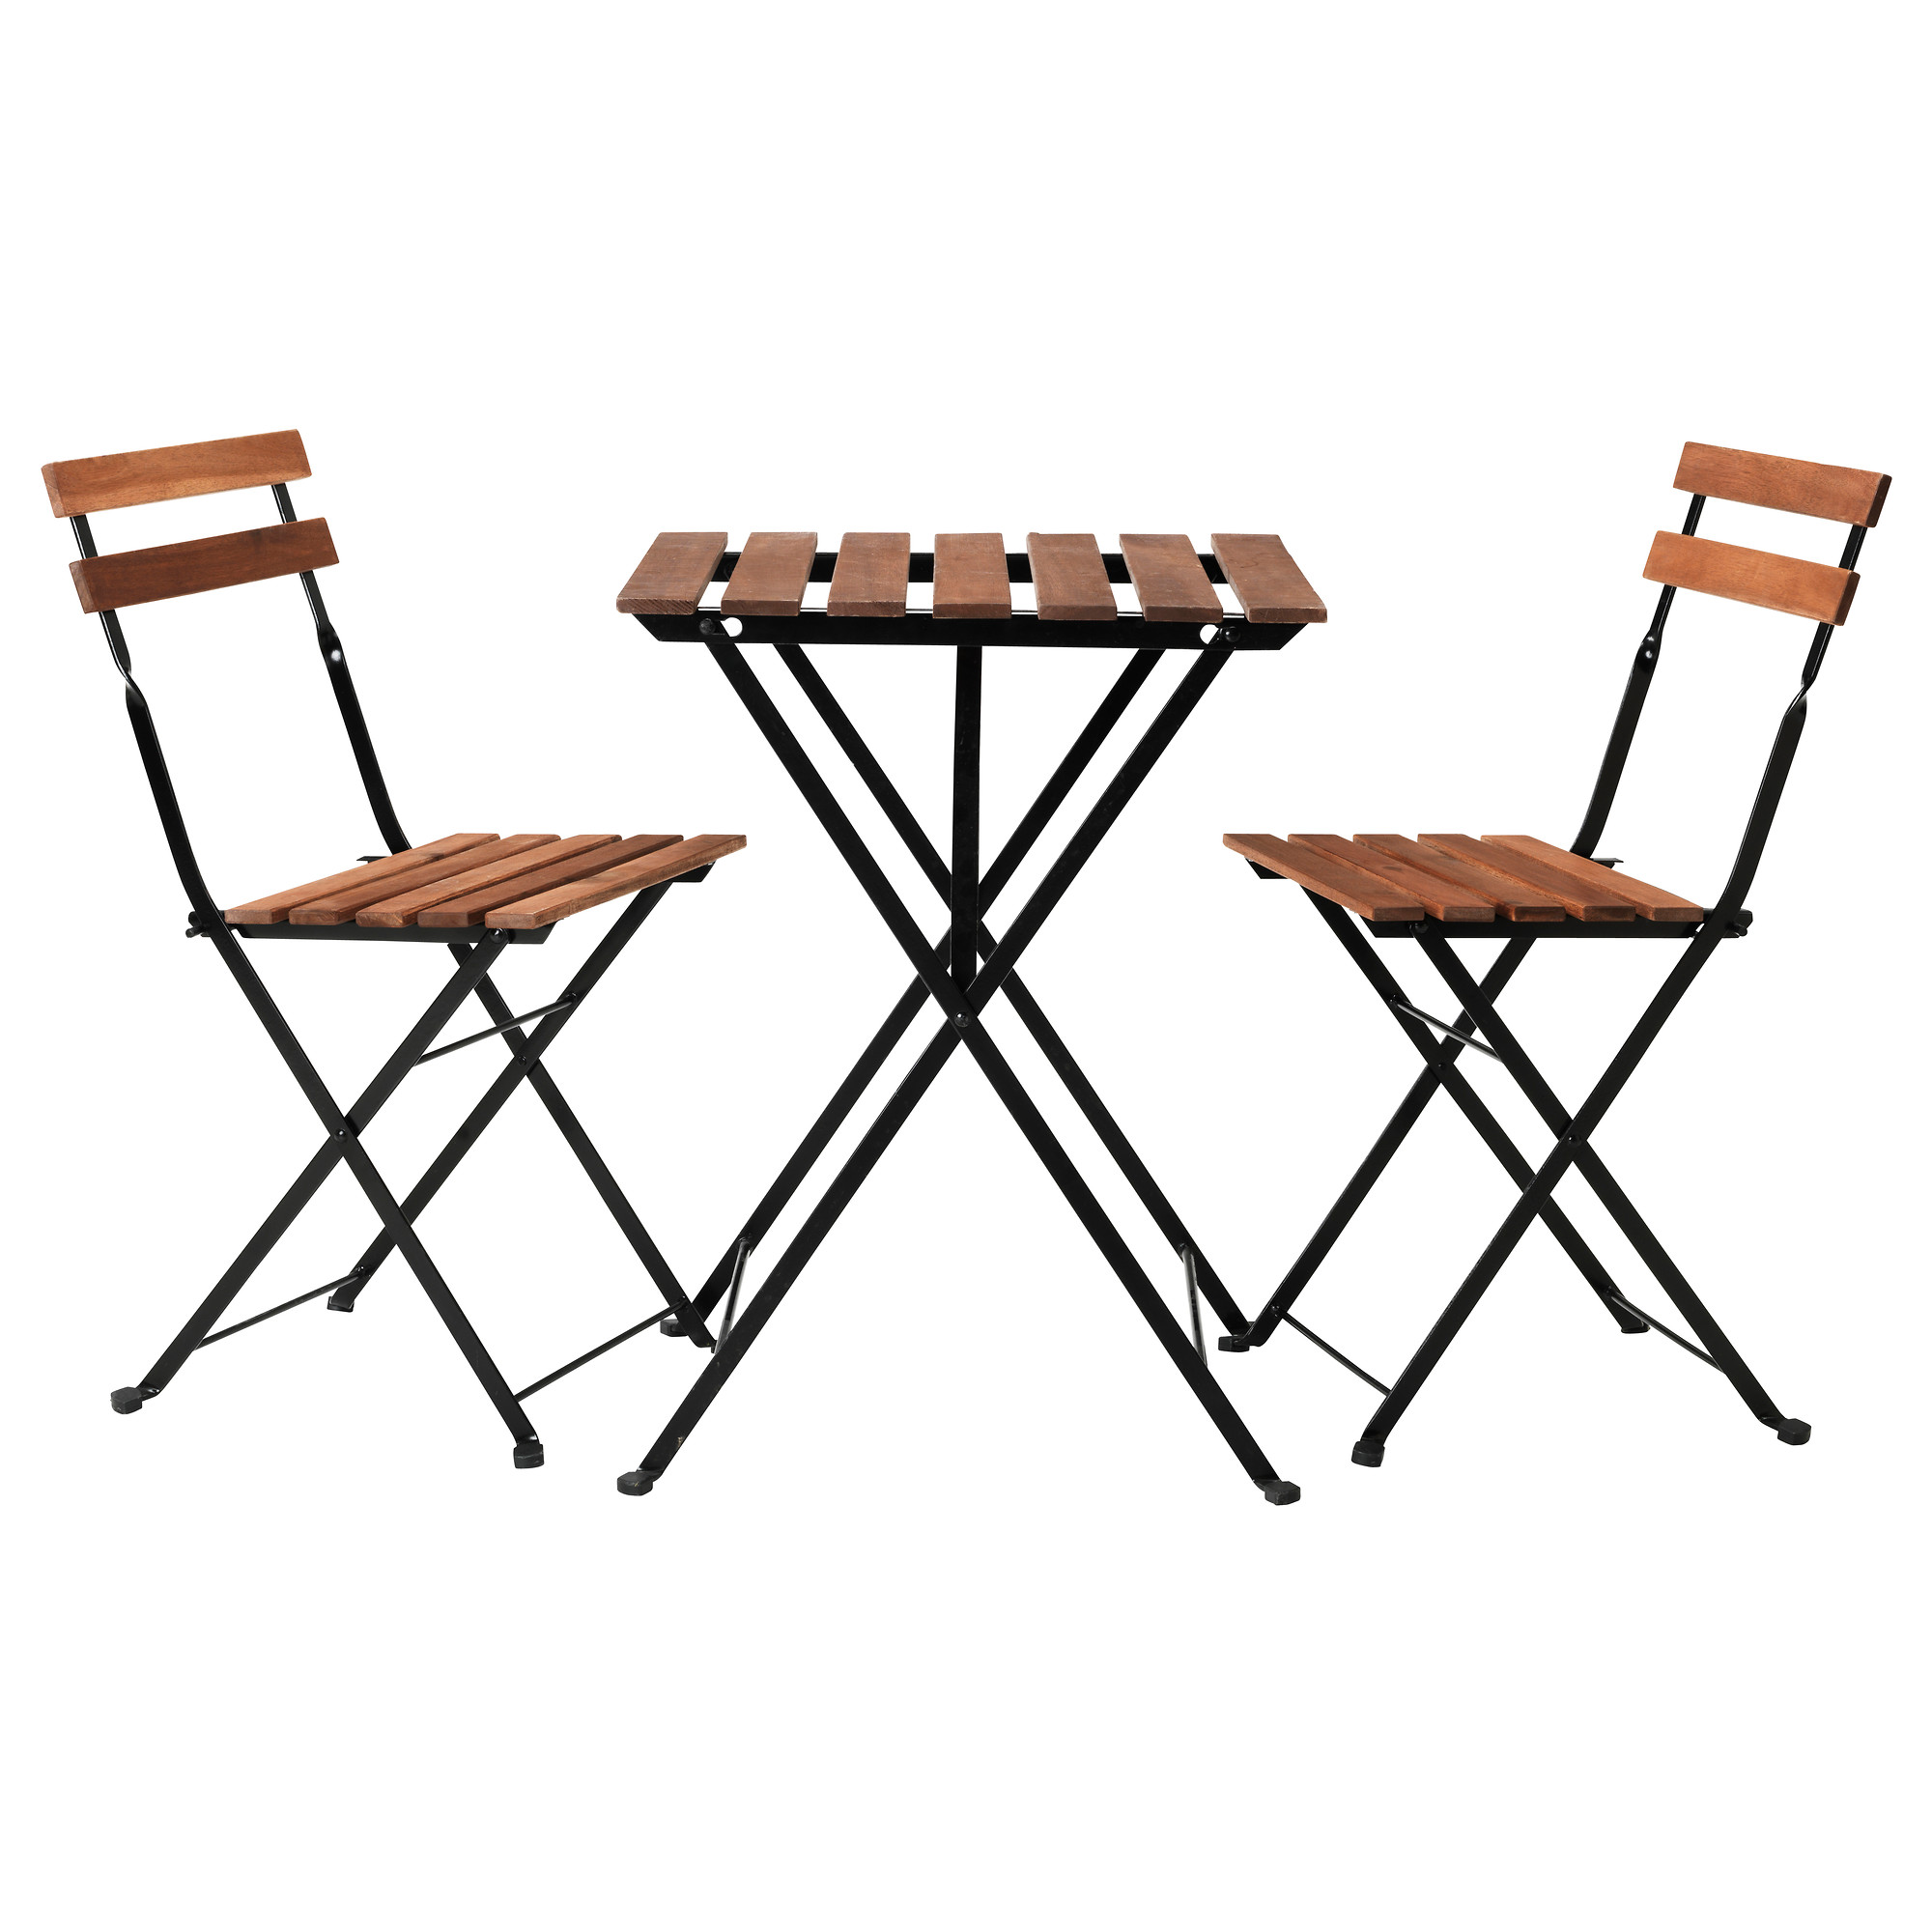 TÄRNÖ, table+10 chairs, outdoor, black/grey-brown stained